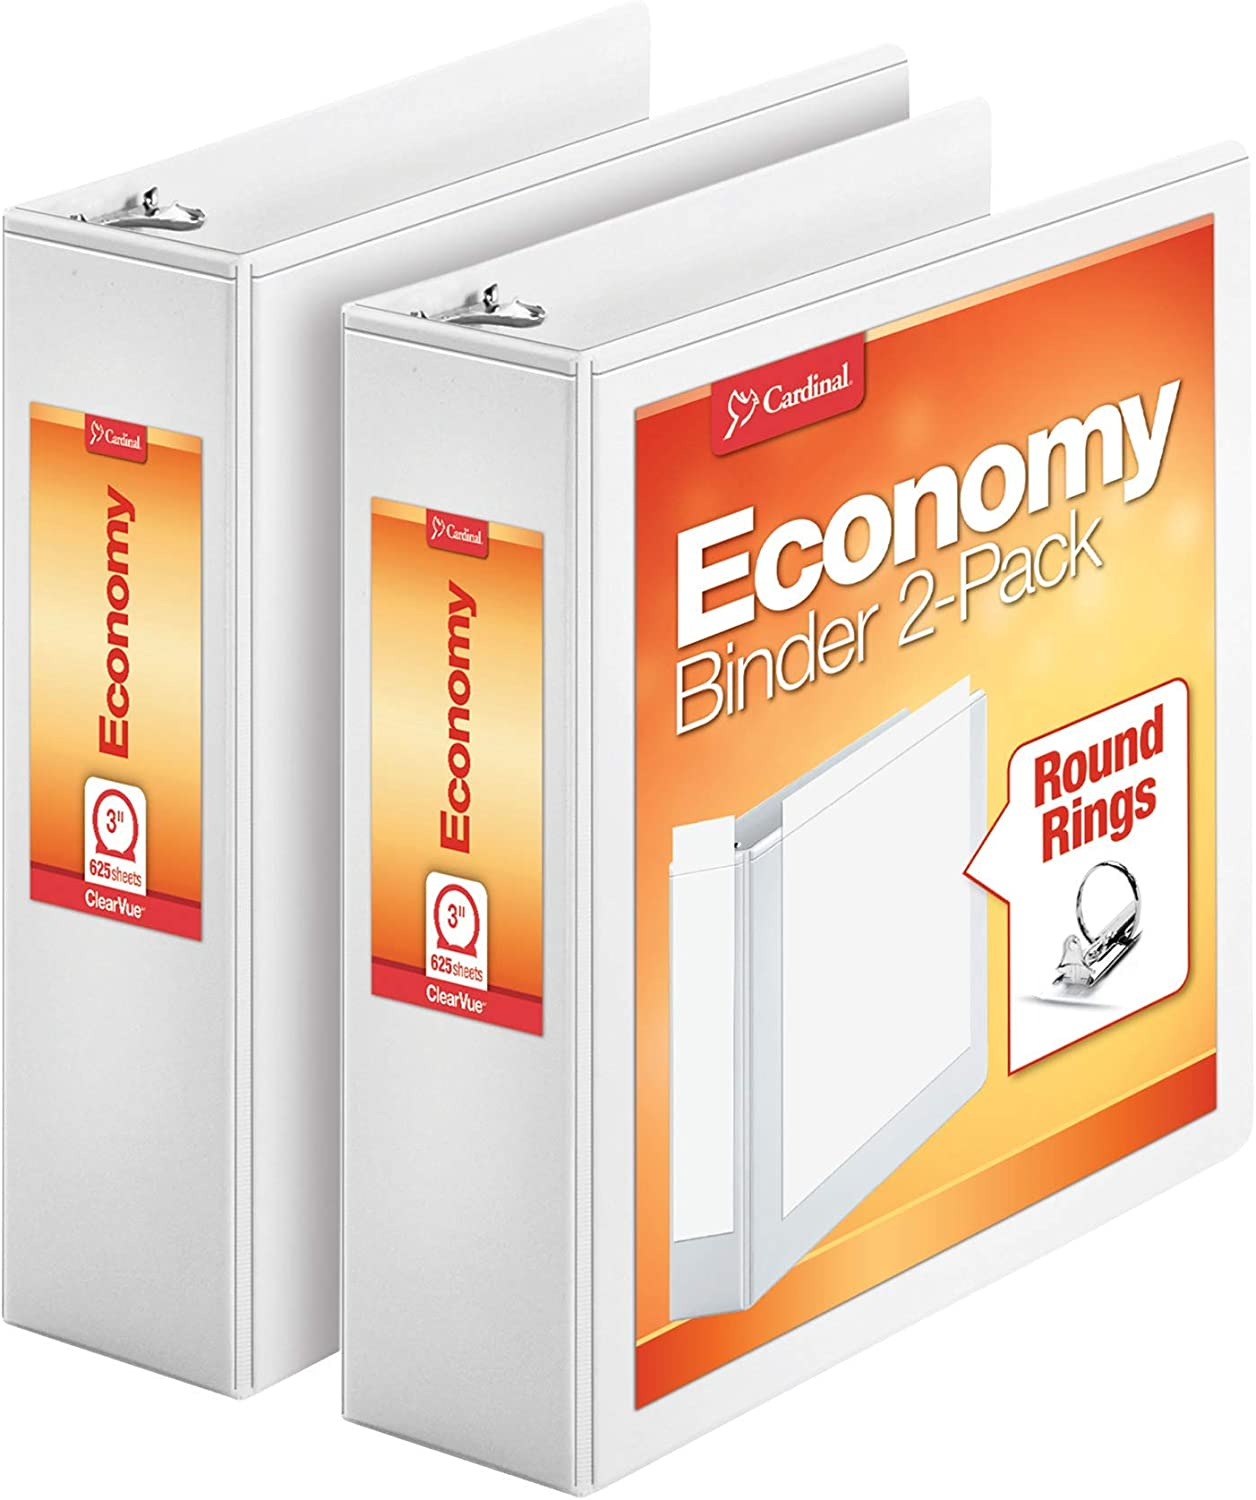 Nonstick PVC Free 3 Inch 2 Pack of Binders 79530 New Version Economy 3 Ring Binder Holds 625 Sheets Presentation View White